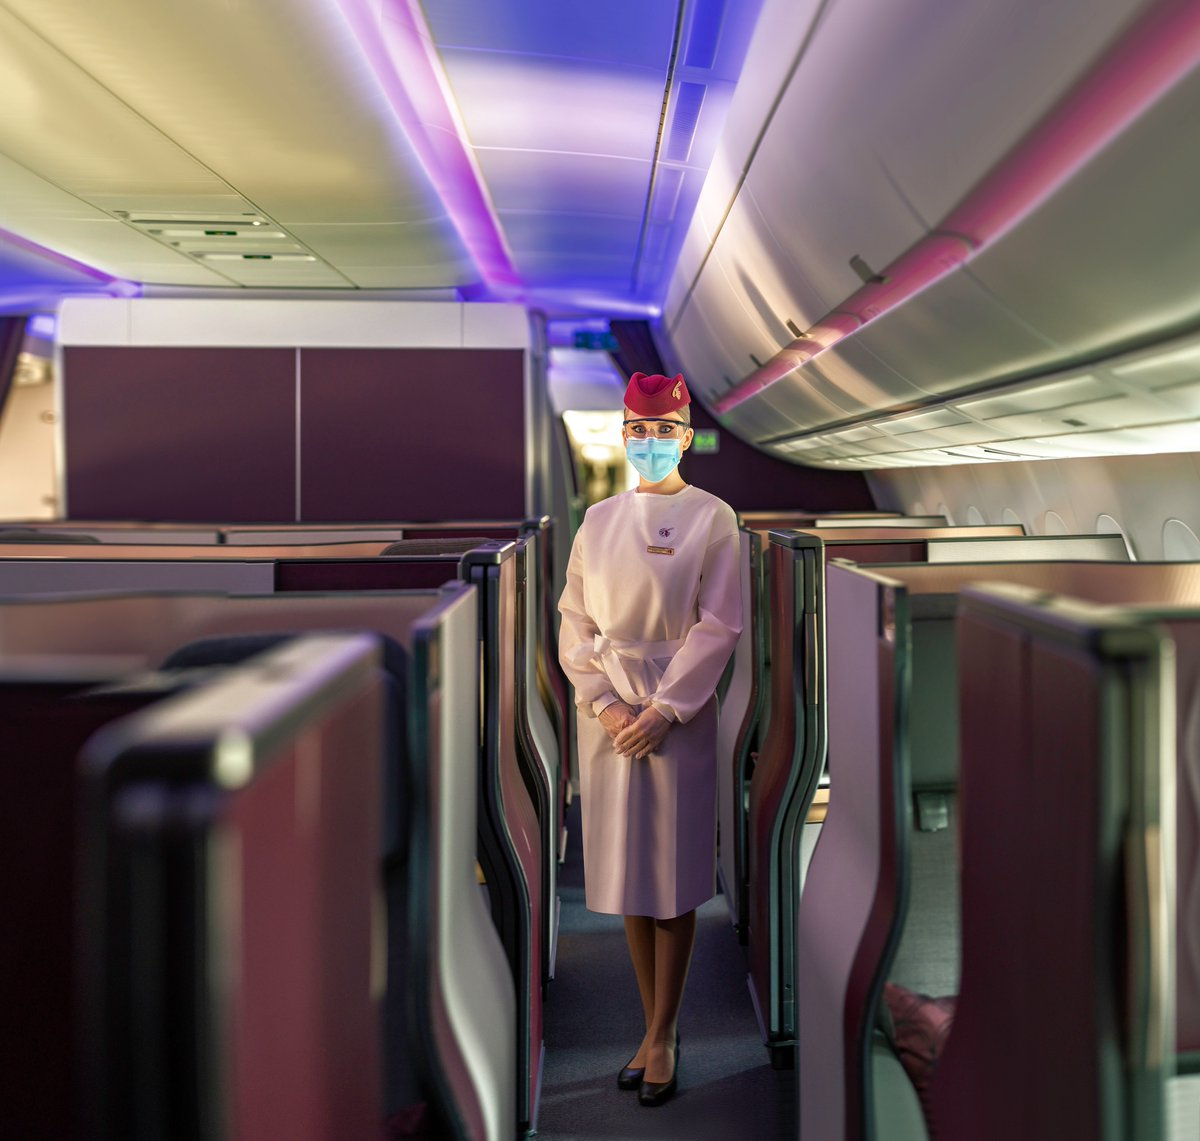 Throughout 2020 we have been offering an unparalleled experience in carrying passengers safely, reliably and uniquely. #RelyOnUs to get you to where you need to be. #QatarAirways https://t.co/7BgSe8SZnY